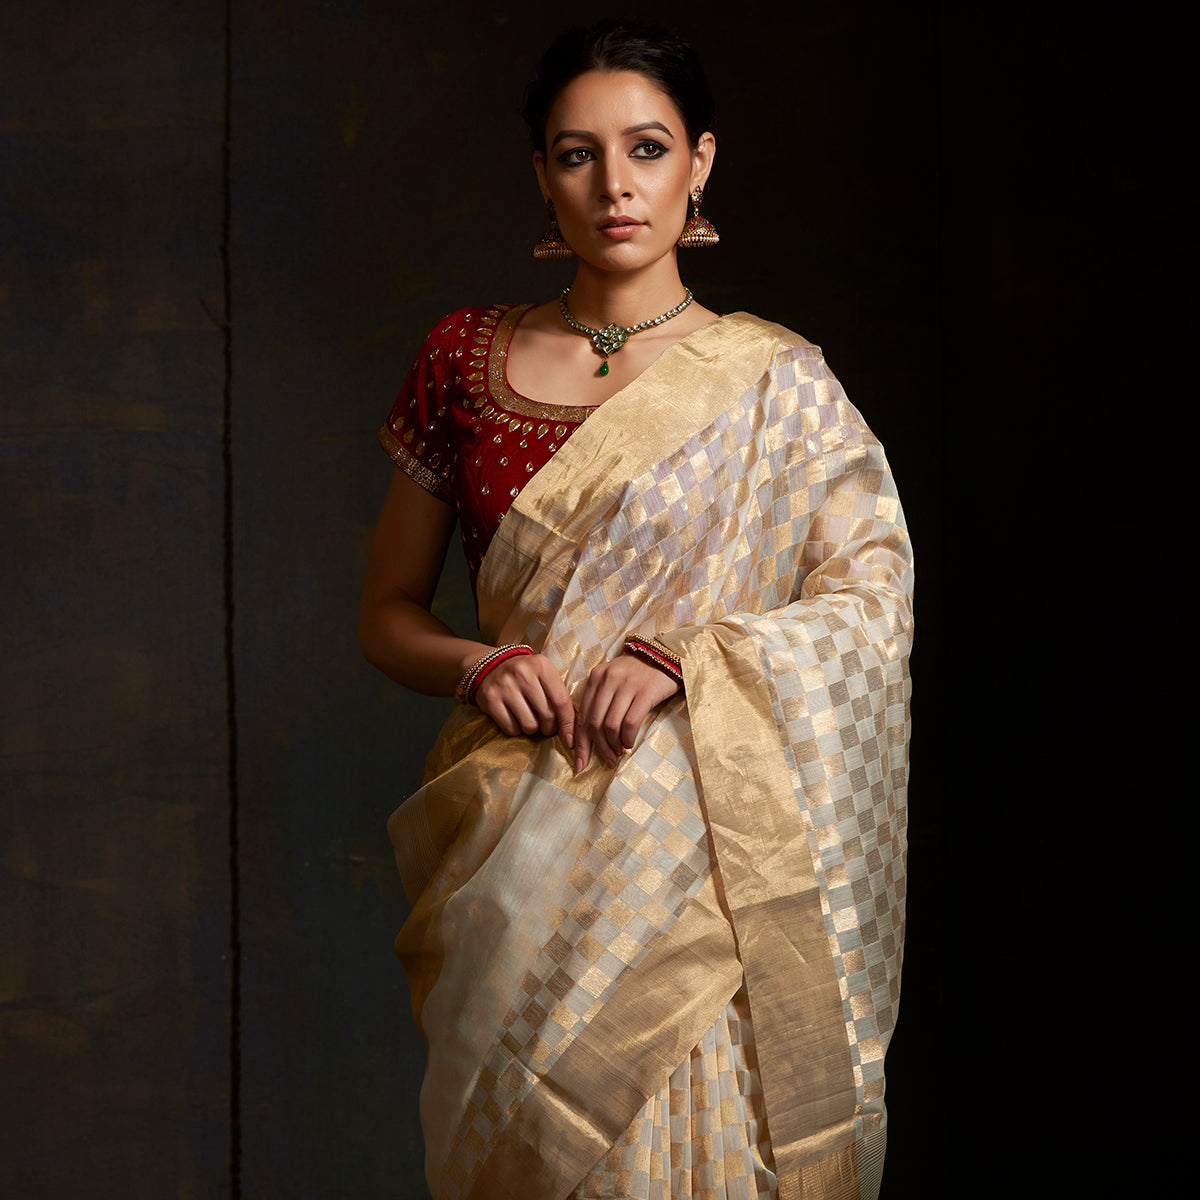 c33c7aca413 Handwoven Chanderi saree in Ivory and Gold